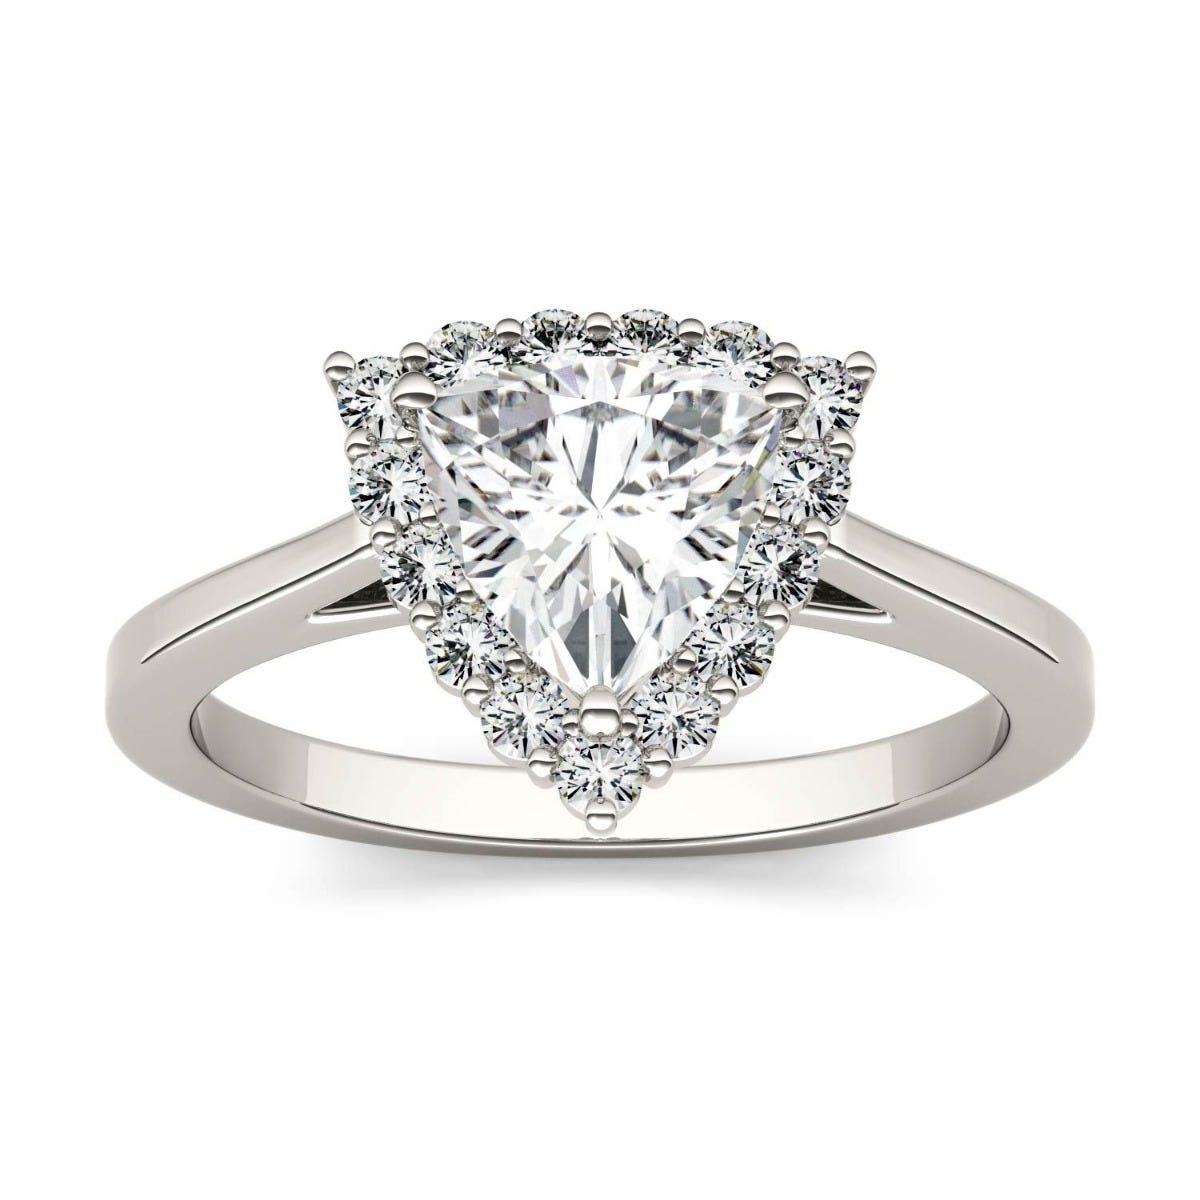 Forever One Trillion Colorless Moissanite Halo Engagement Ring in 14K White Gold